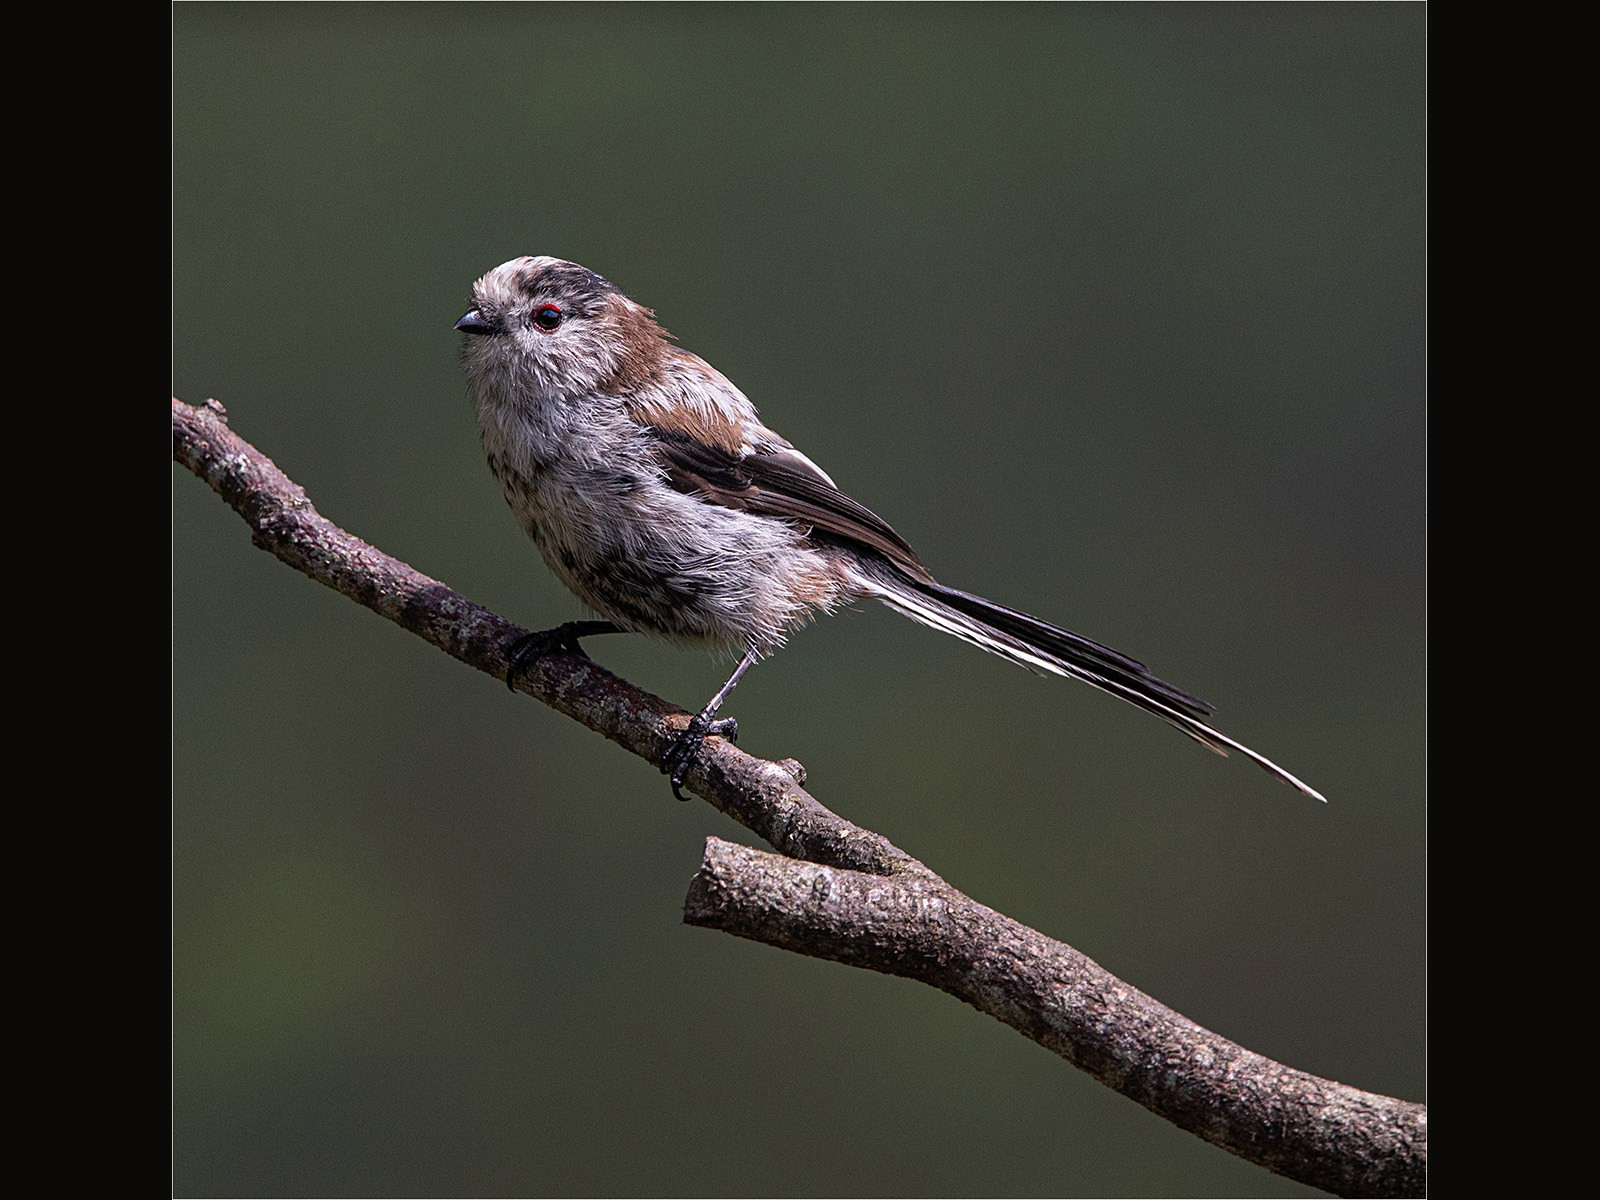 15. Long-tailed Tit